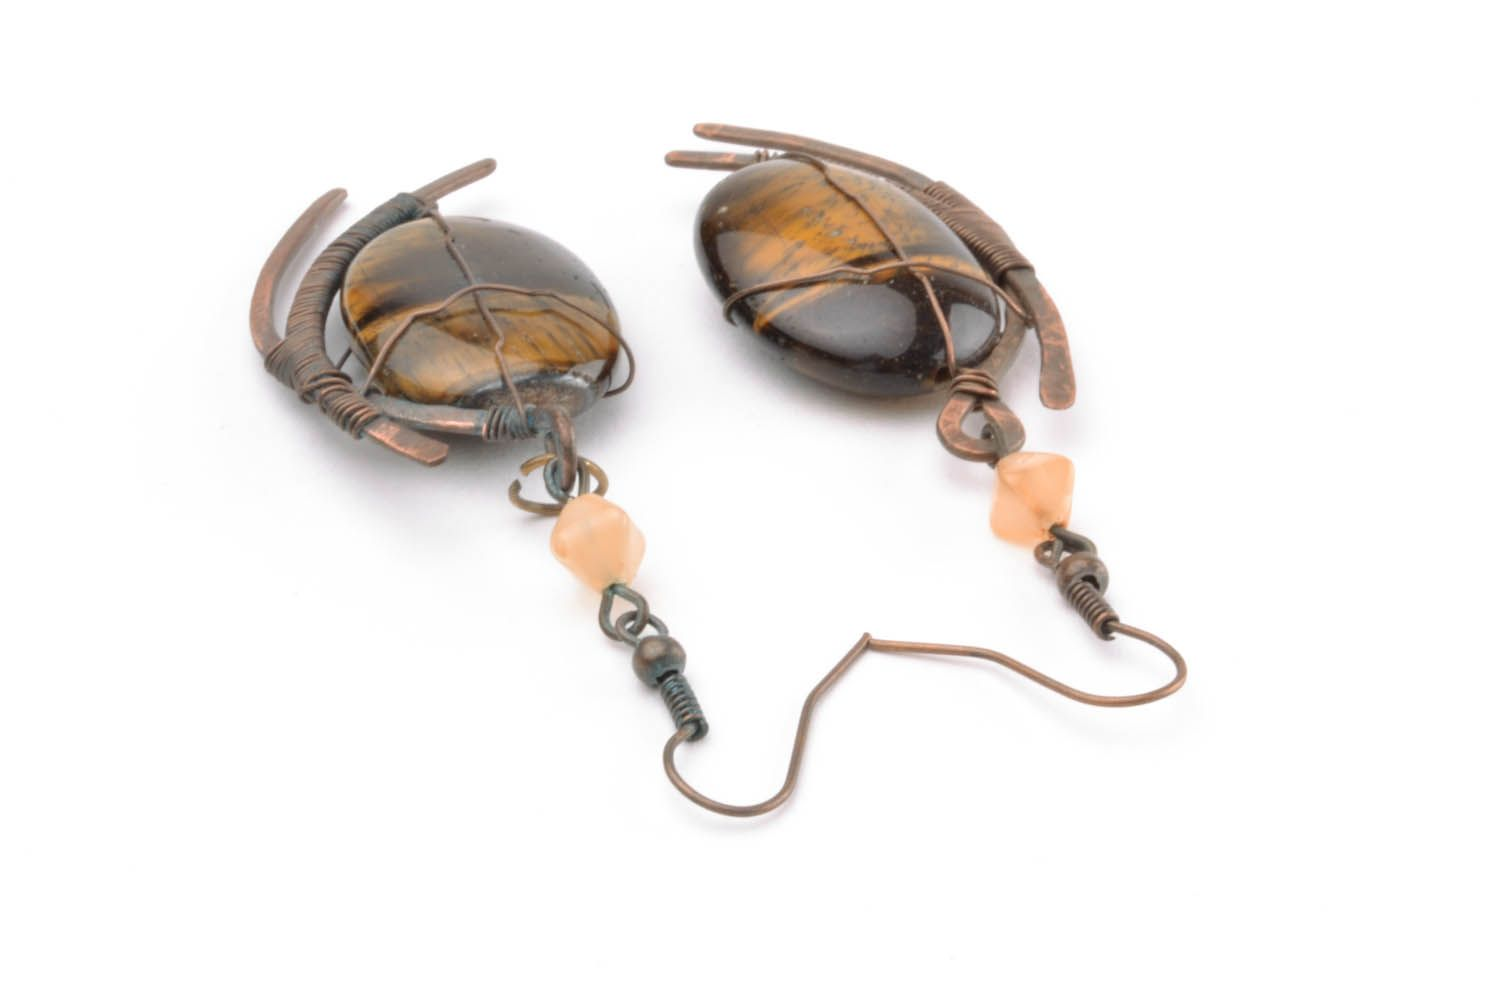 Copper earrings with tiger's eye stone photo 4